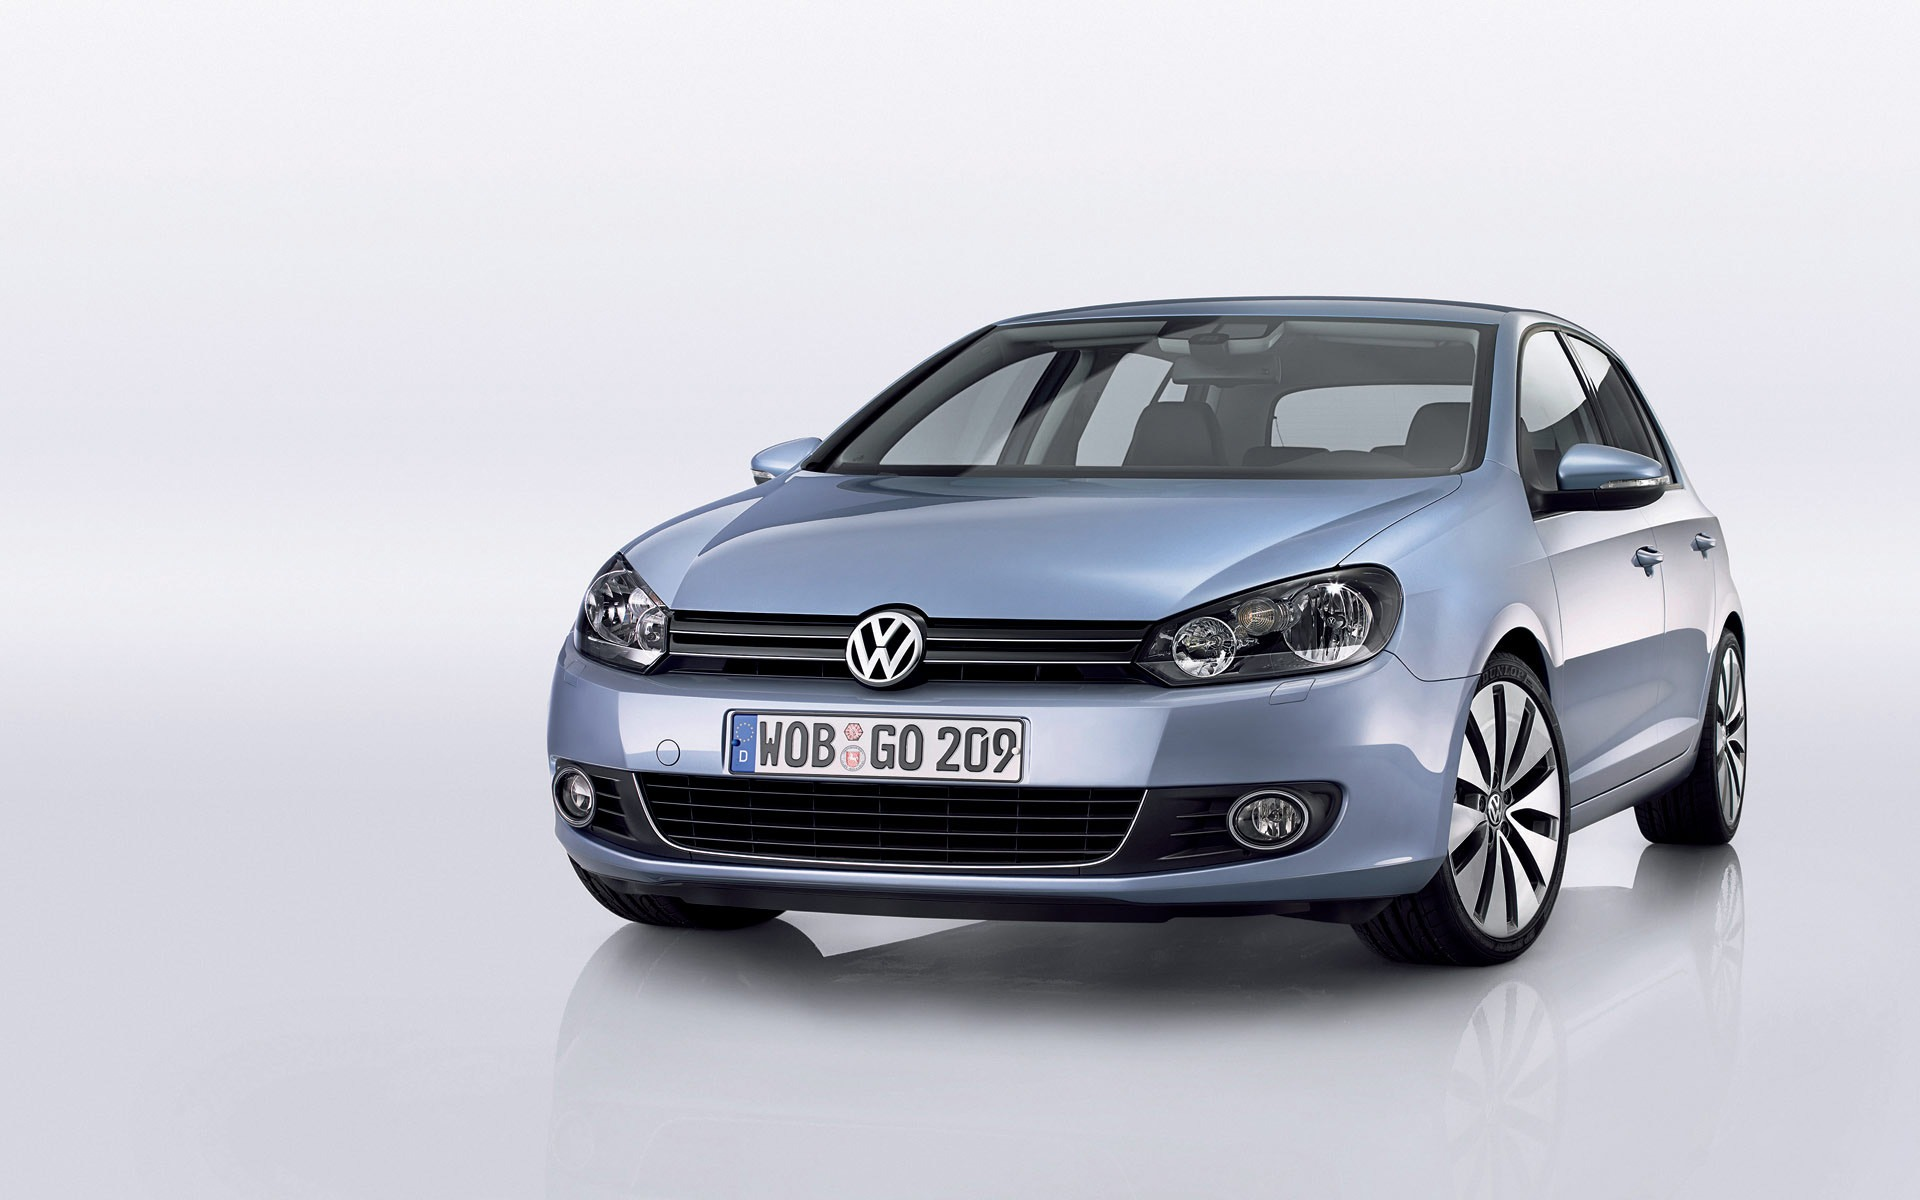 VW Golf VI Wallpaper Volkswagen Cars Wallpapers